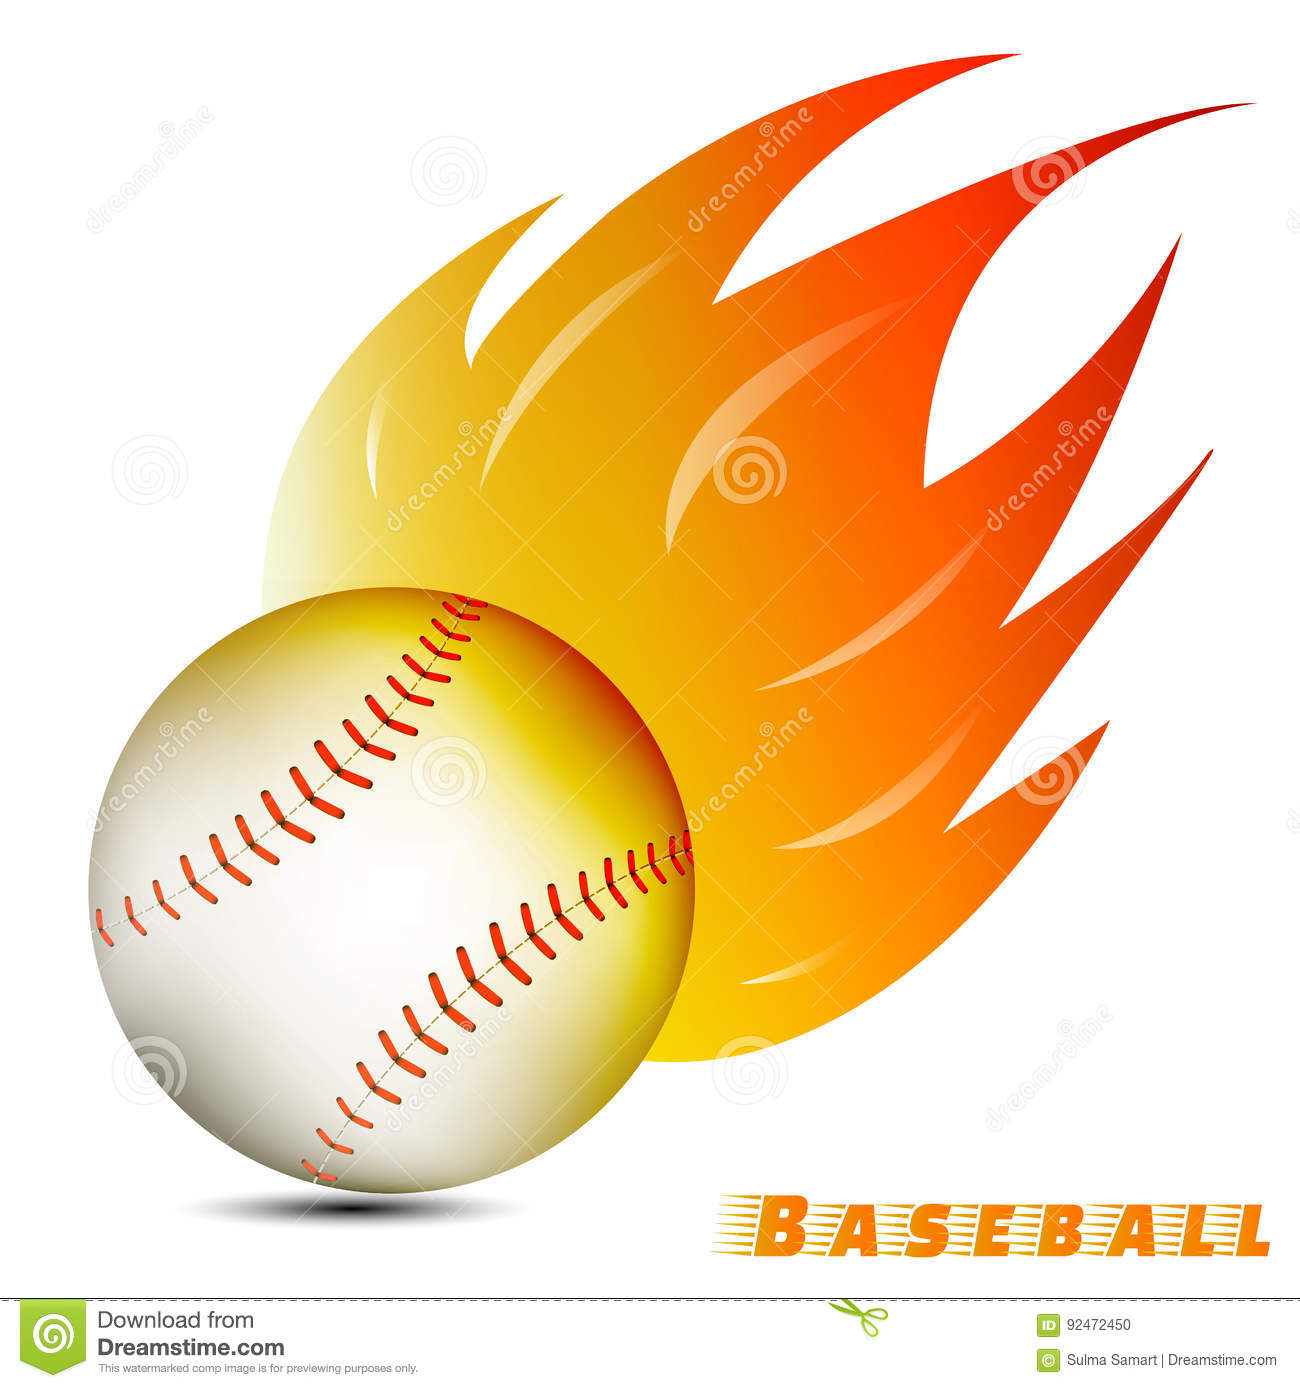 Baseball ball with red orange yellow fire tone on white background. baseball team club logo. vector. illustration.